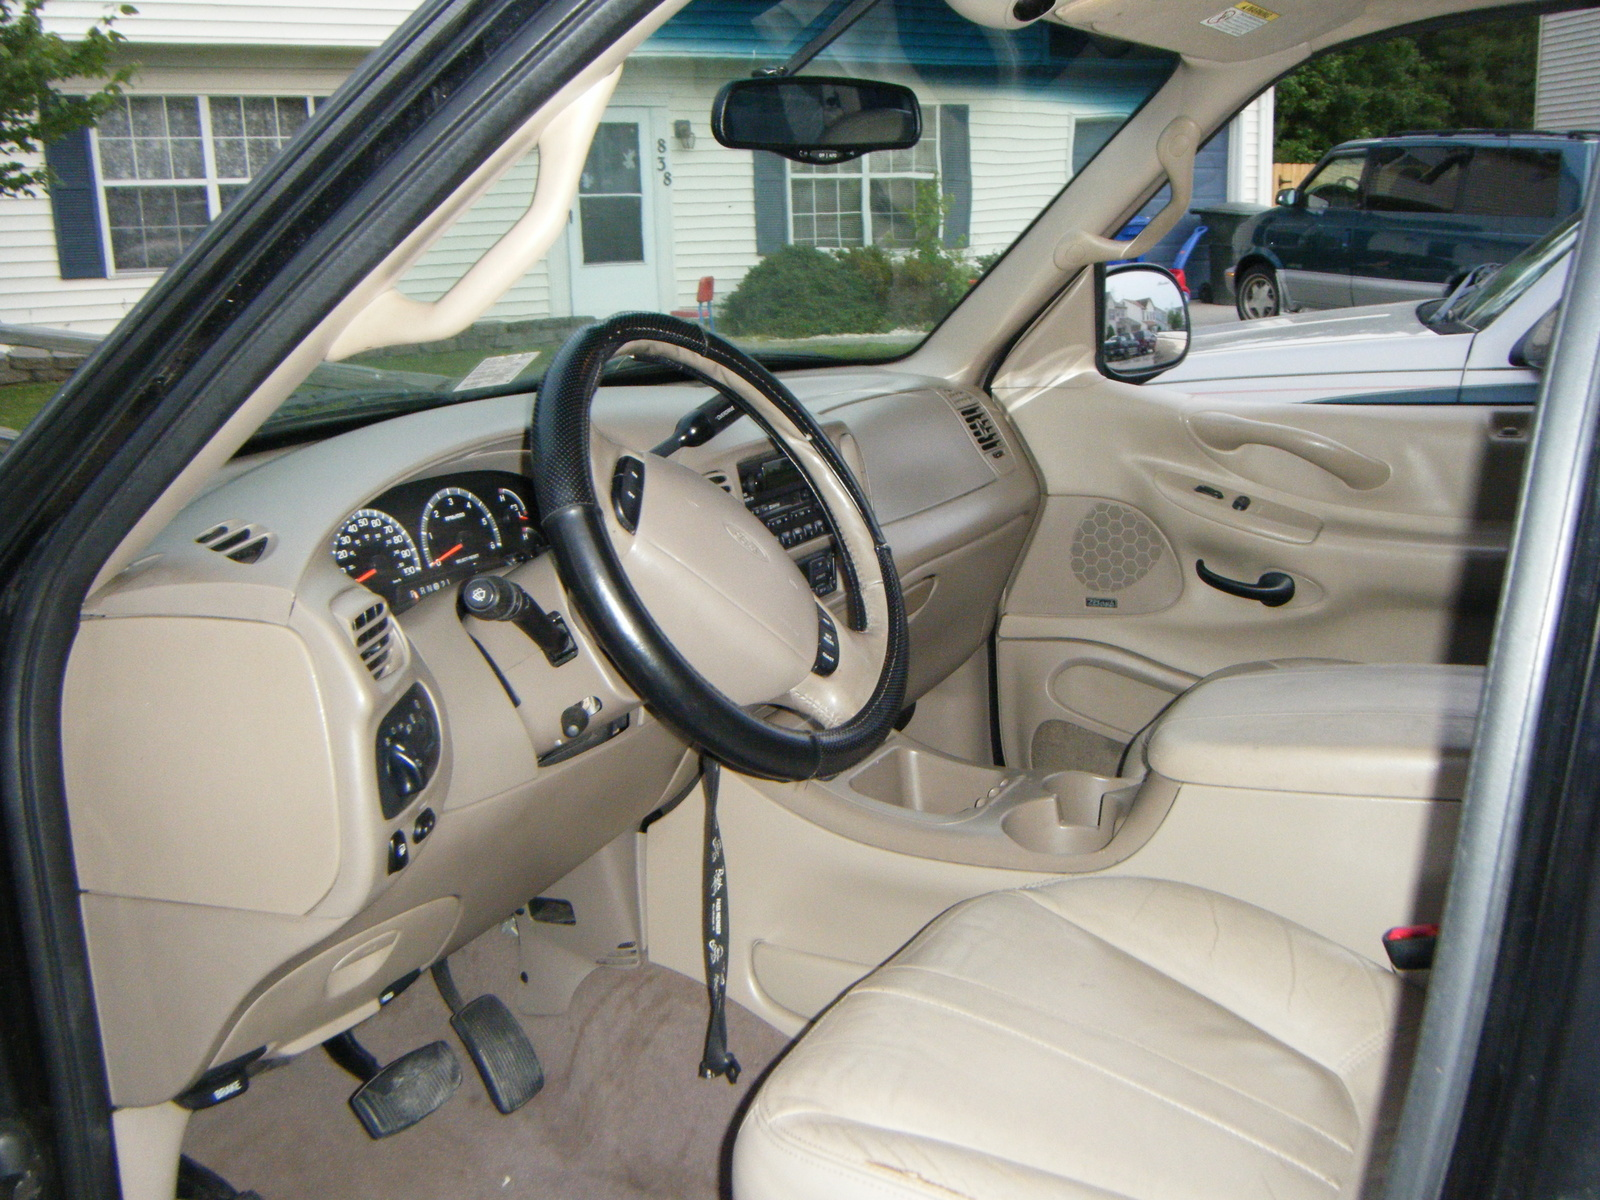 2000 Ford Expedition Interior Parts